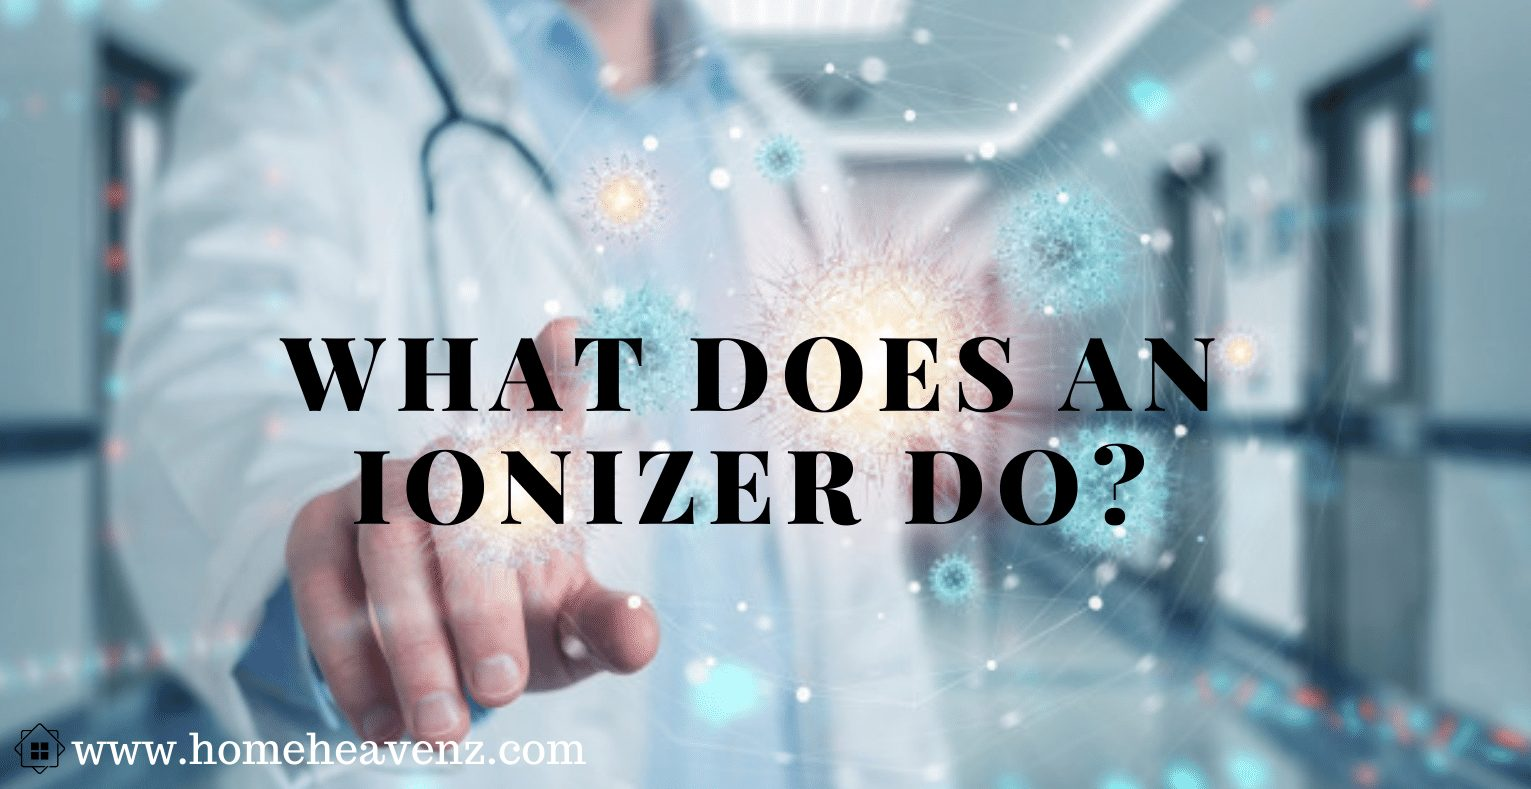 What Does an Ionizer Do?